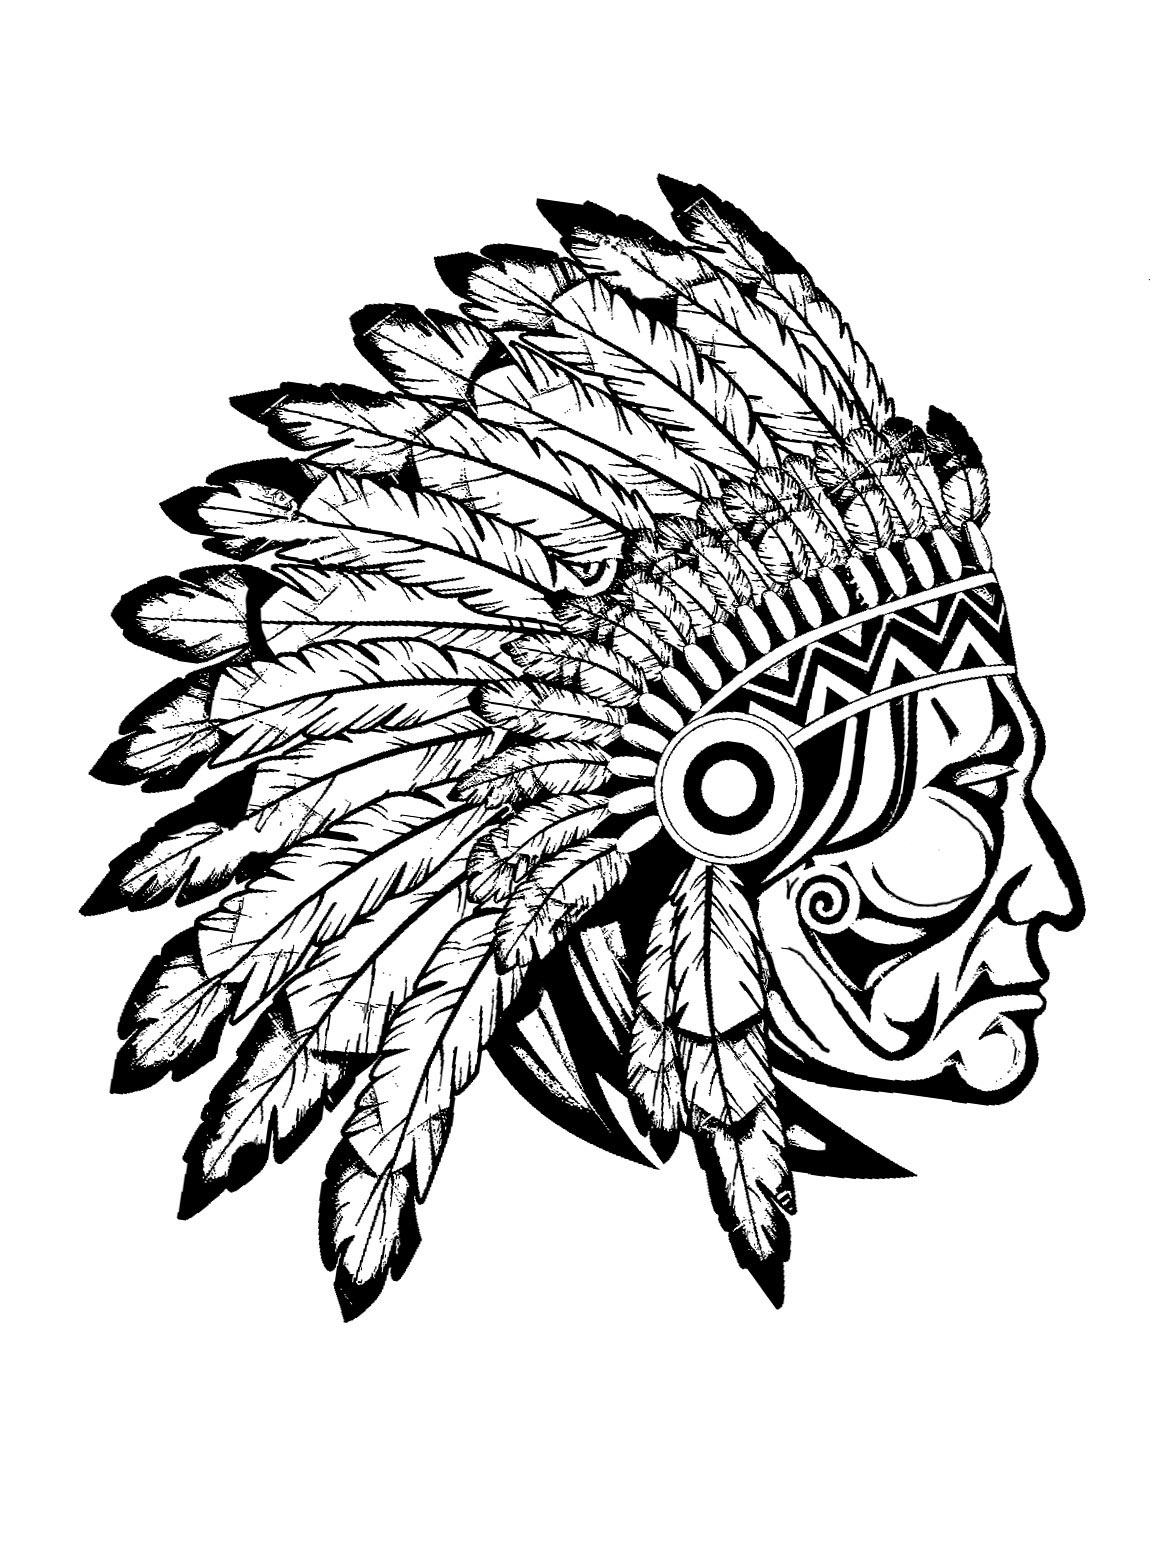 Indian native chief profile - Native American Adult Coloring Pages